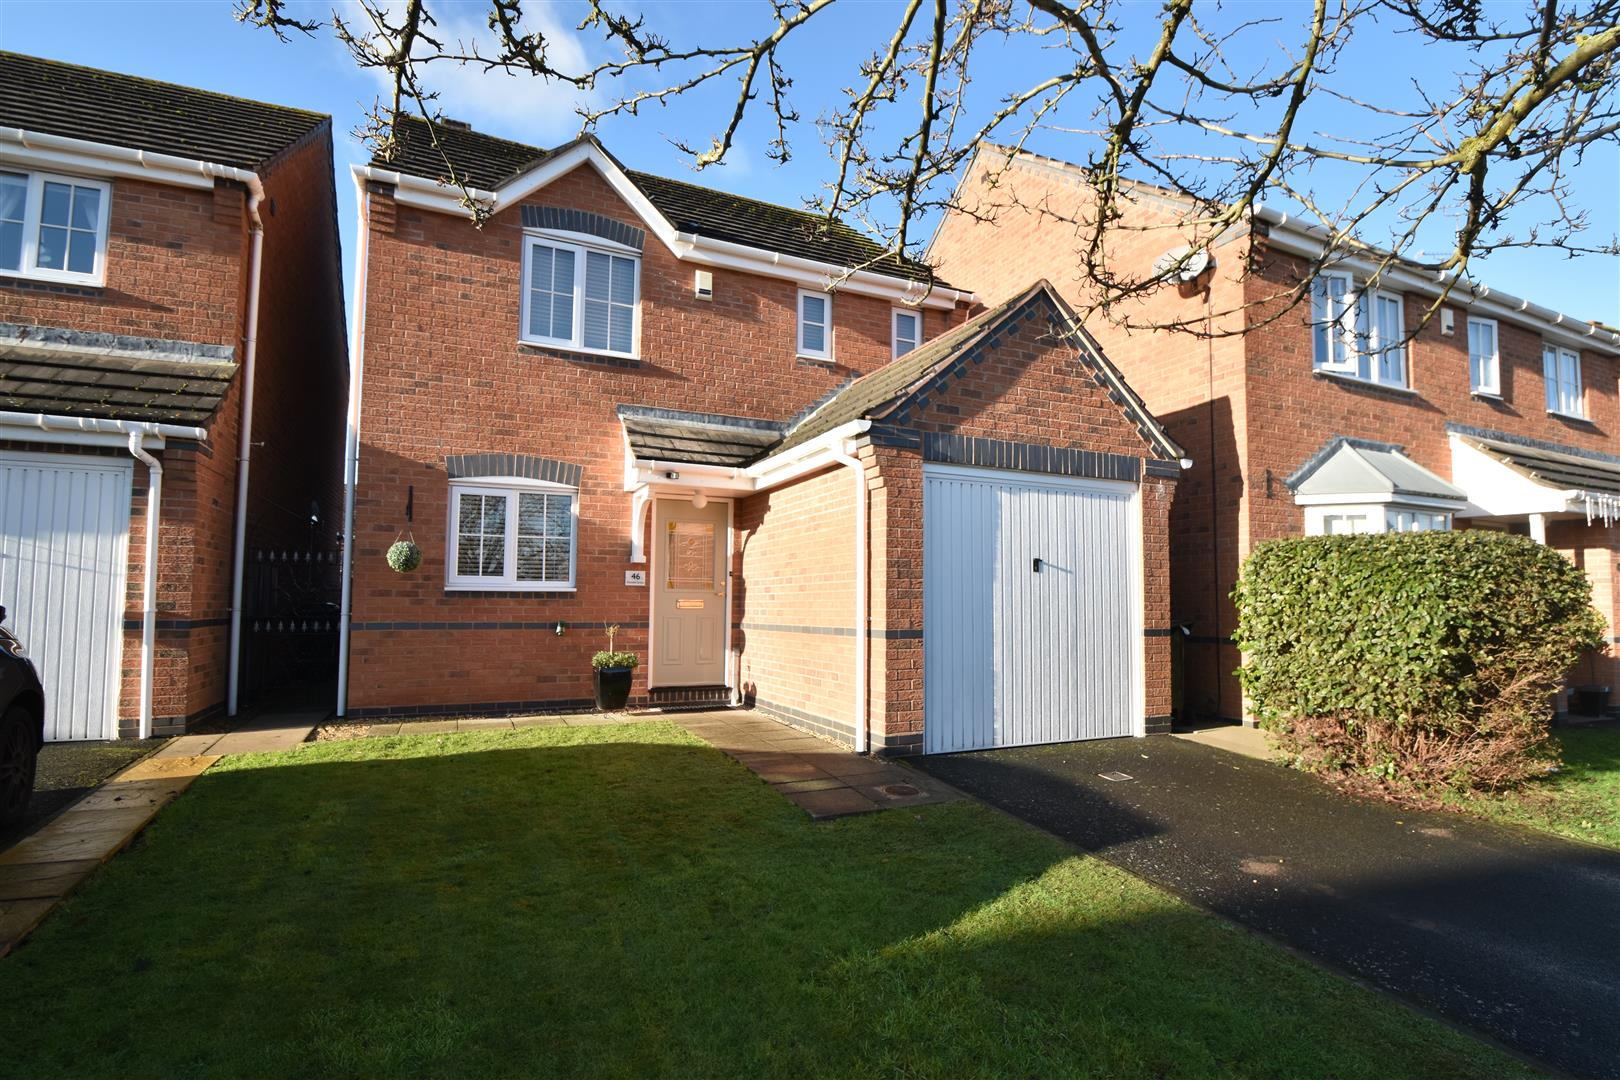 3 Bedrooms Detached House for sale in Showell Green, Droitwich